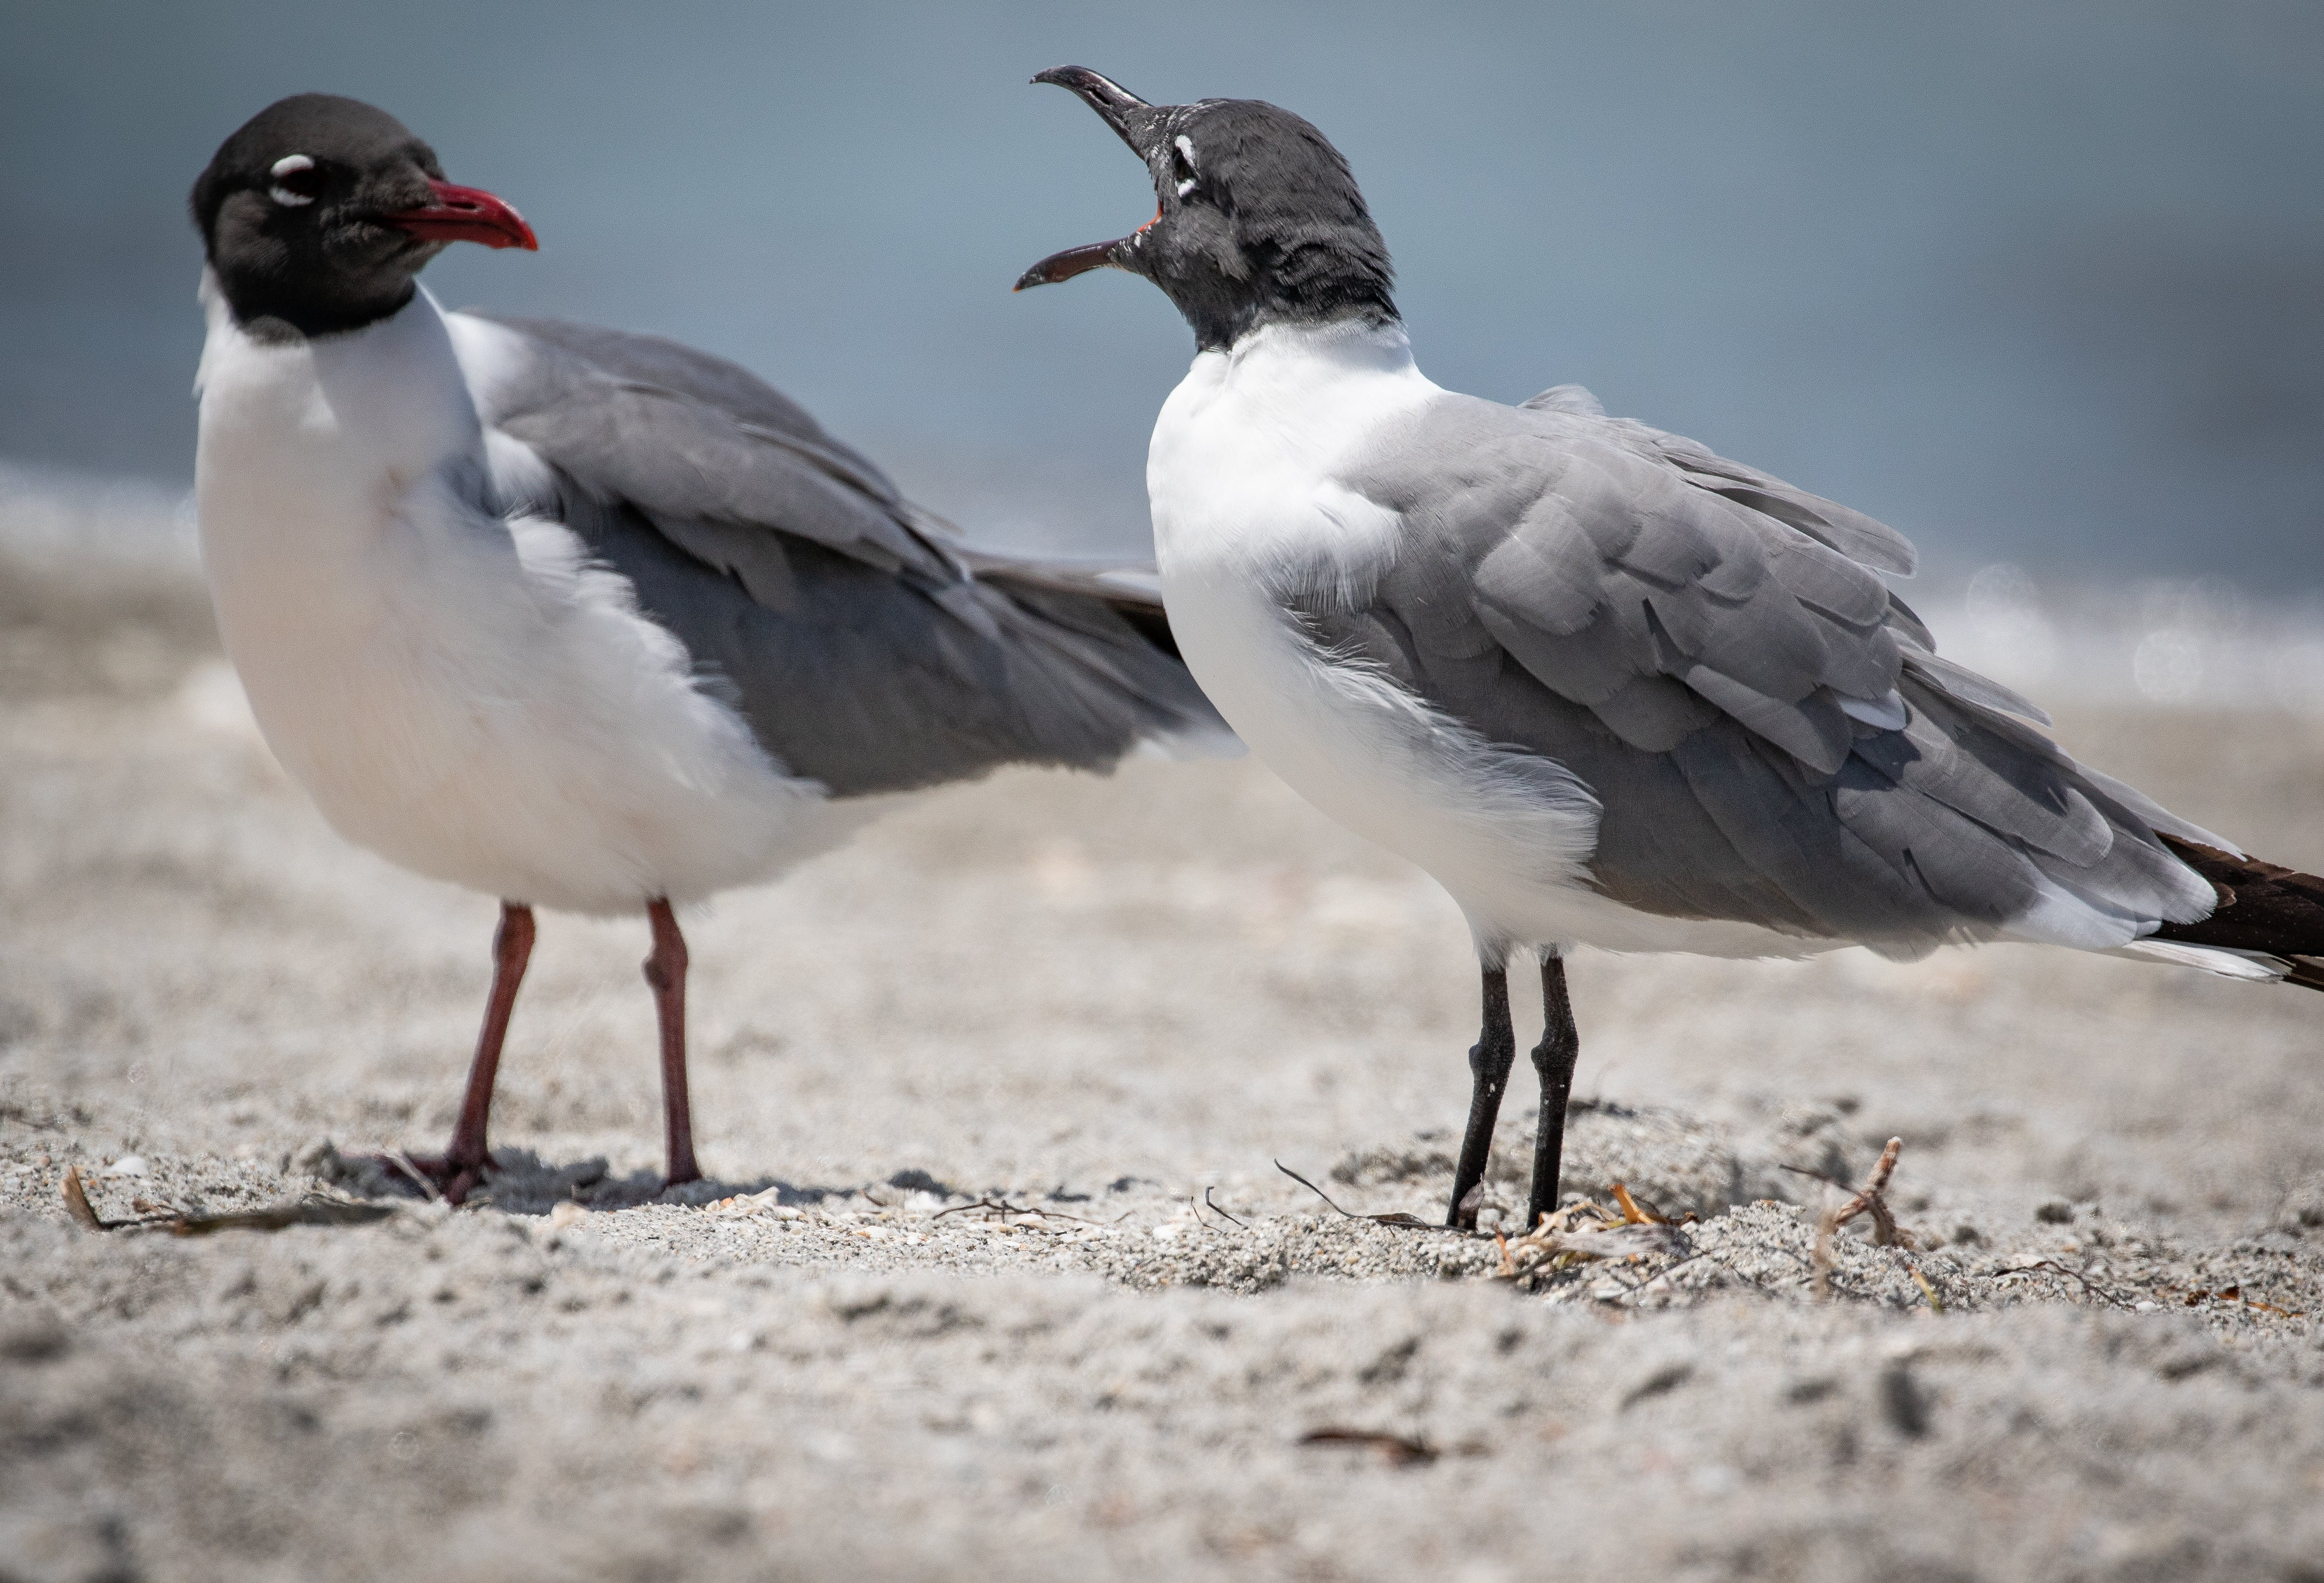 Two Black and White Birds